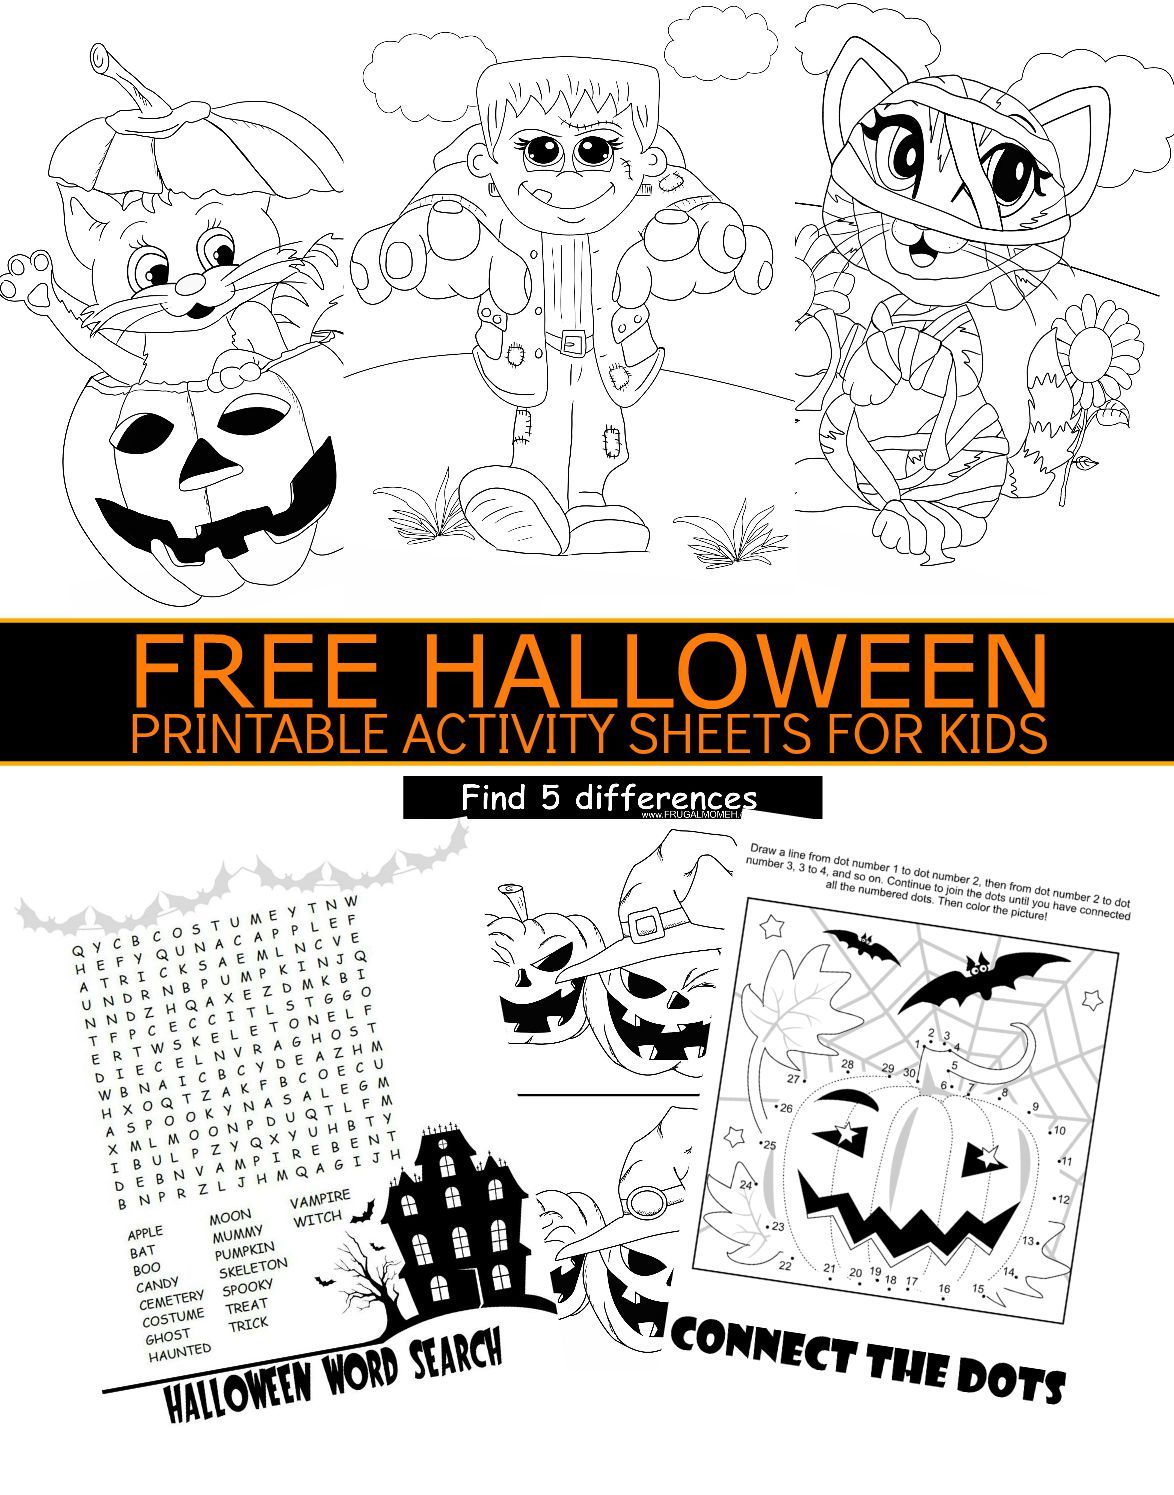 Free Halloween Printable Activity Sheets For Kids